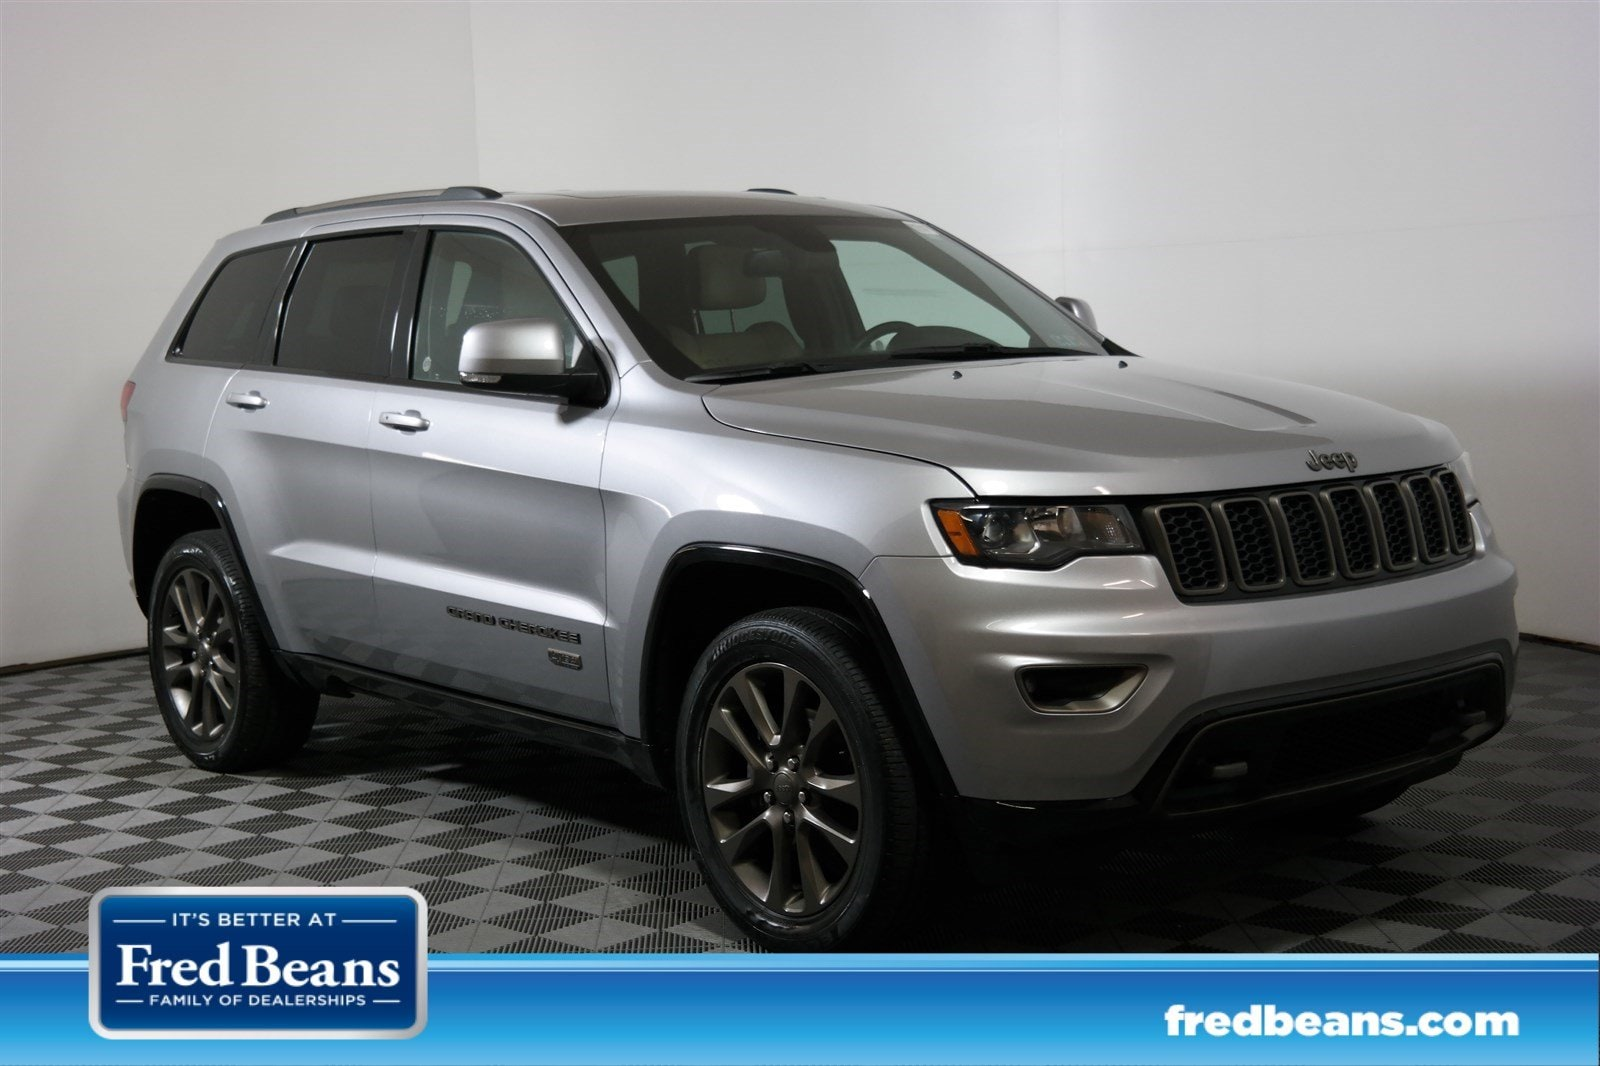 hight resolution of certified used 2016 jeep grand cherokee limited 75th anniversary for sale in doylestown pa 1c4rjfbg0gc393556